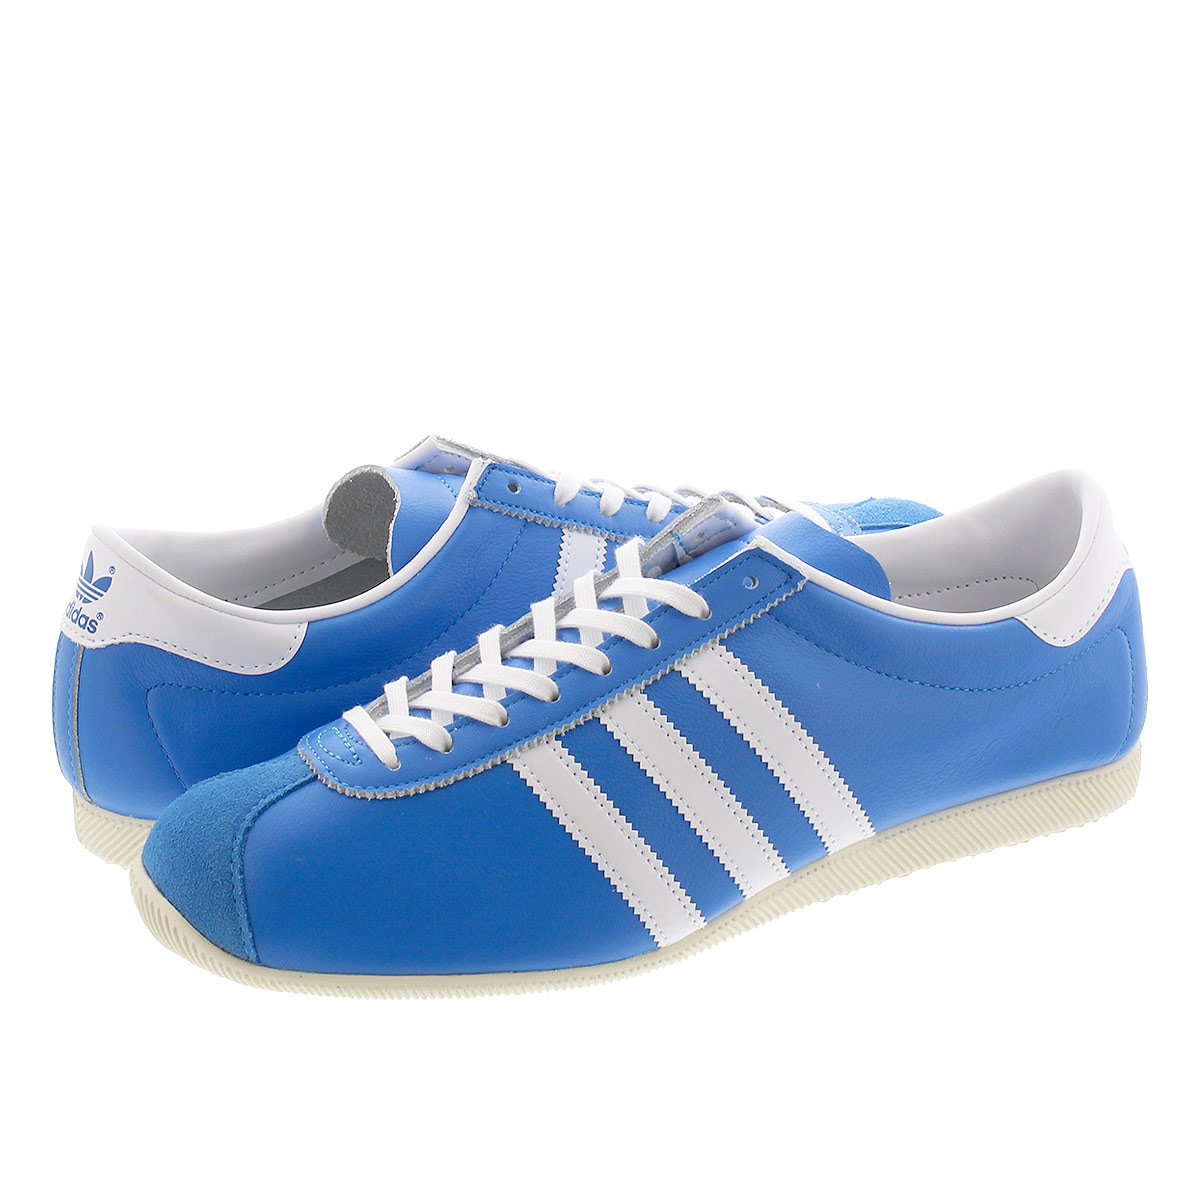 adidas OVERDUB アディダス オーバーダブ BRIGHT BLUE/FTWR WHITE/CREAM WHITE fv9682